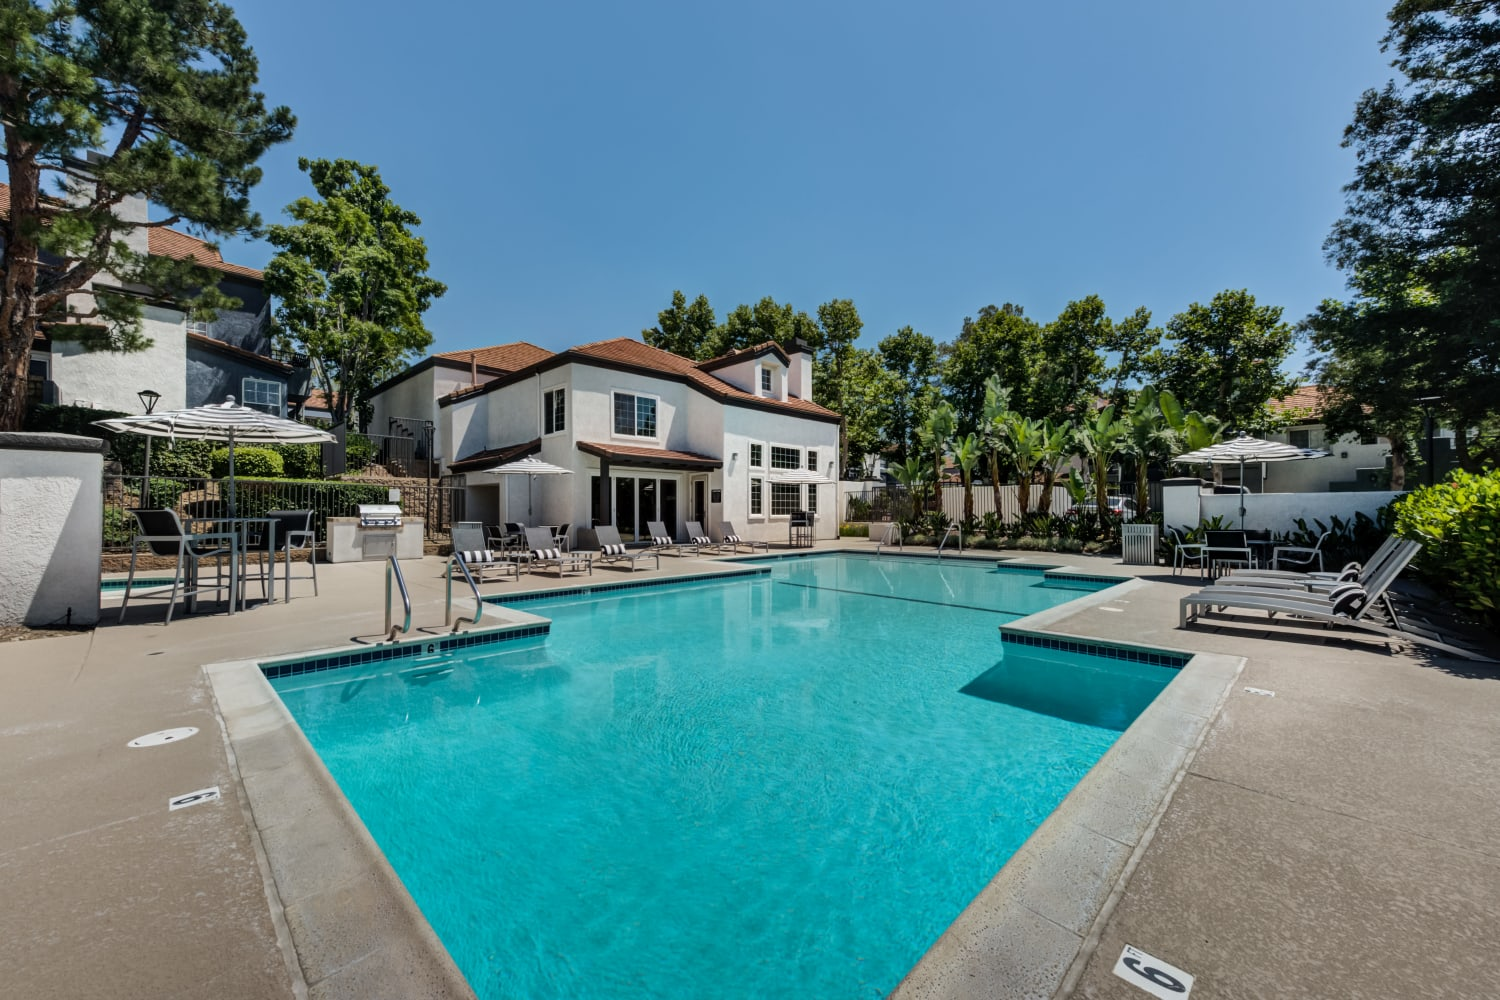 Outdoor swimming pool with clubhouse in the background at Sierra Heights Apartments in Rancho Cucamonga, CA